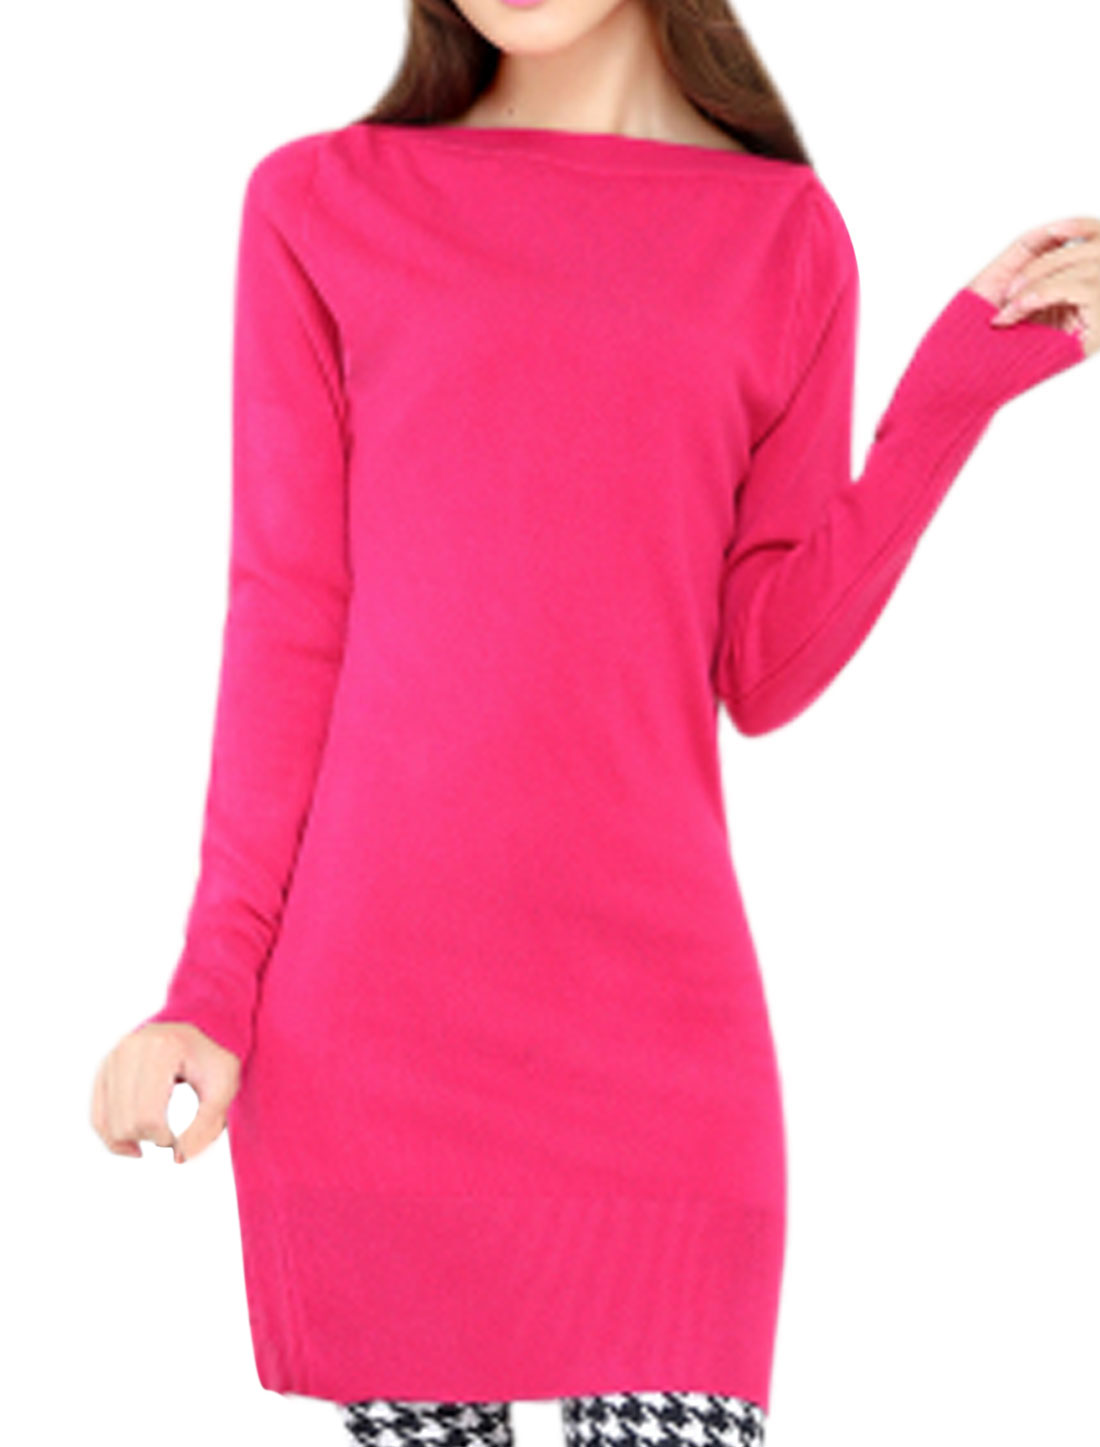 Stylish Slim Fit Boat Neck Pullover Fuchsia Tunic Knit Top for Woman S